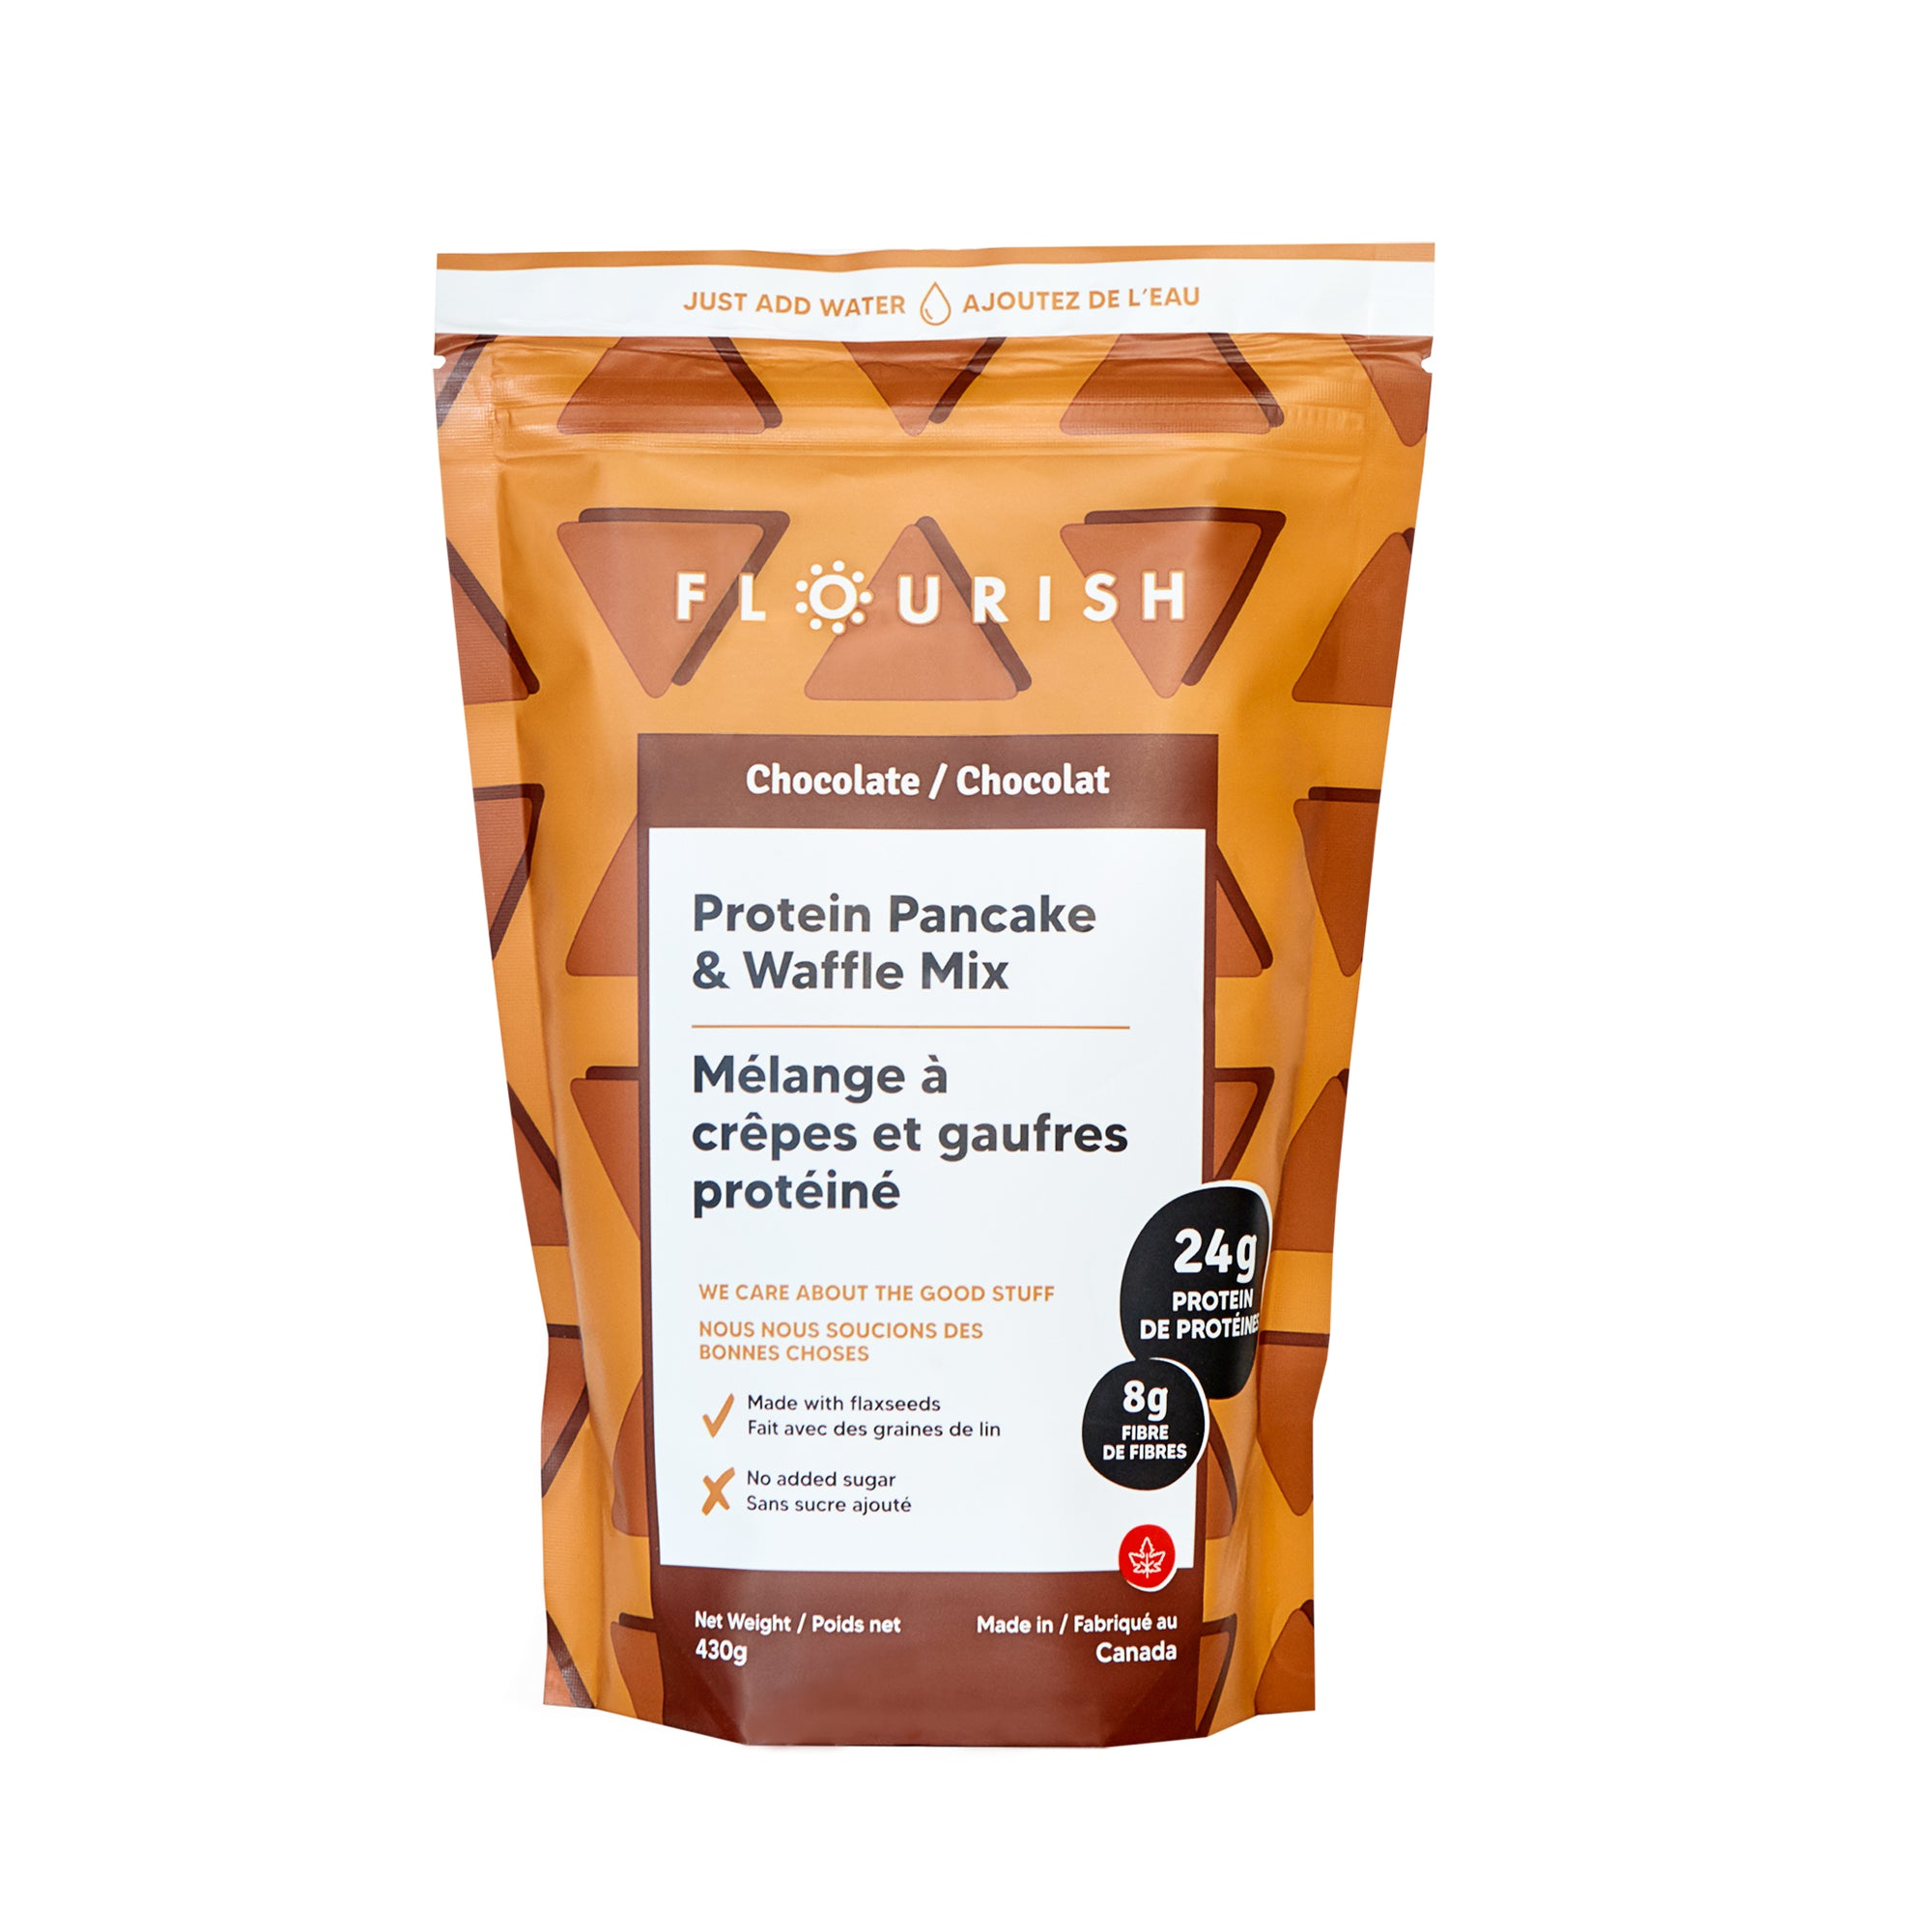 Flourish - Chocolate Protein Pancake Mix, 430g